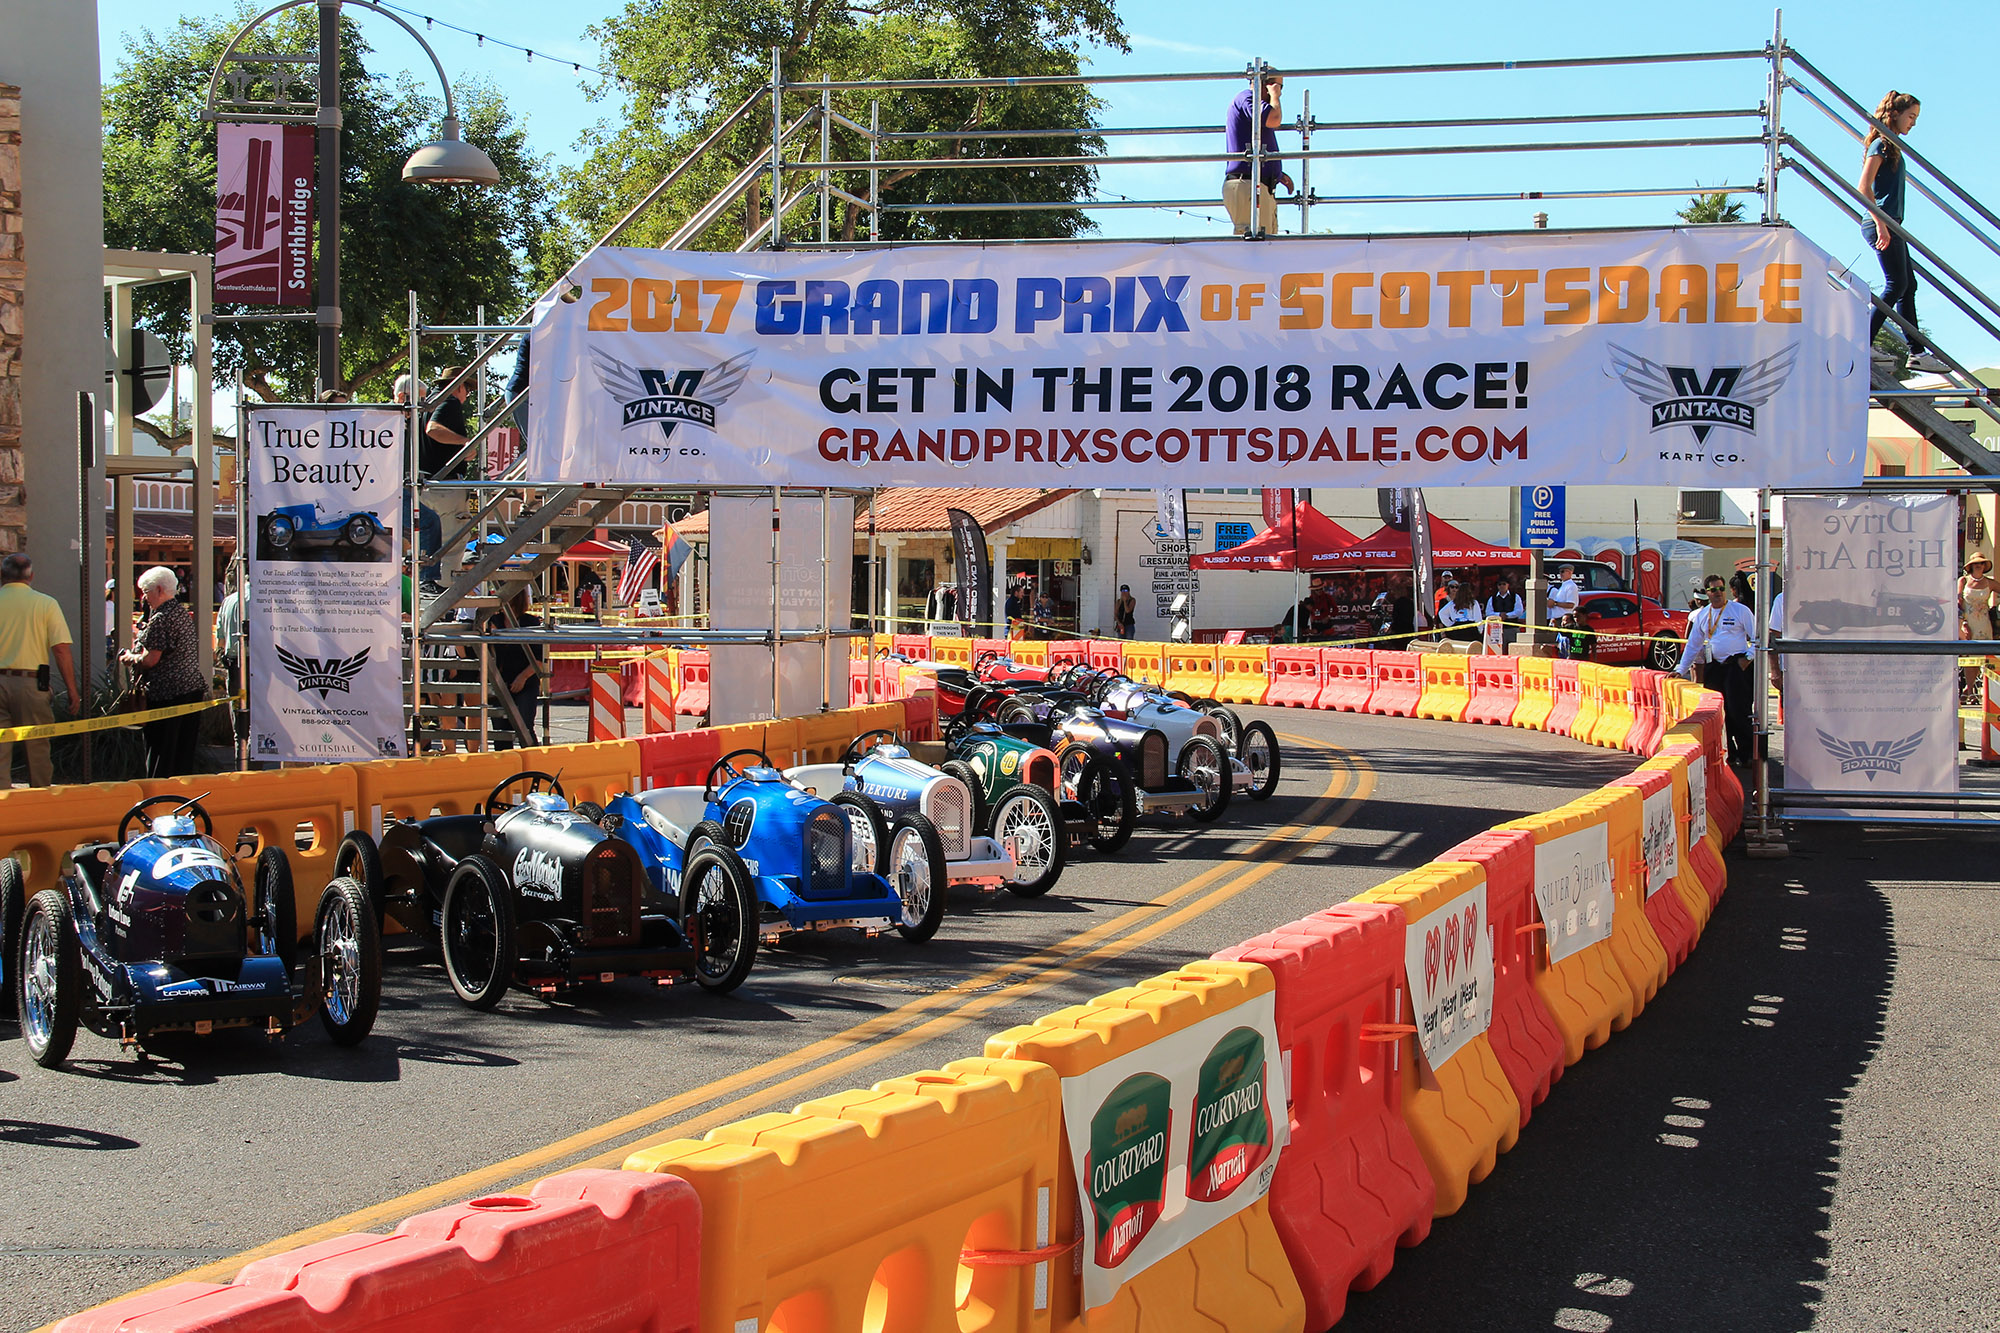 grand prix of scottsdale race course